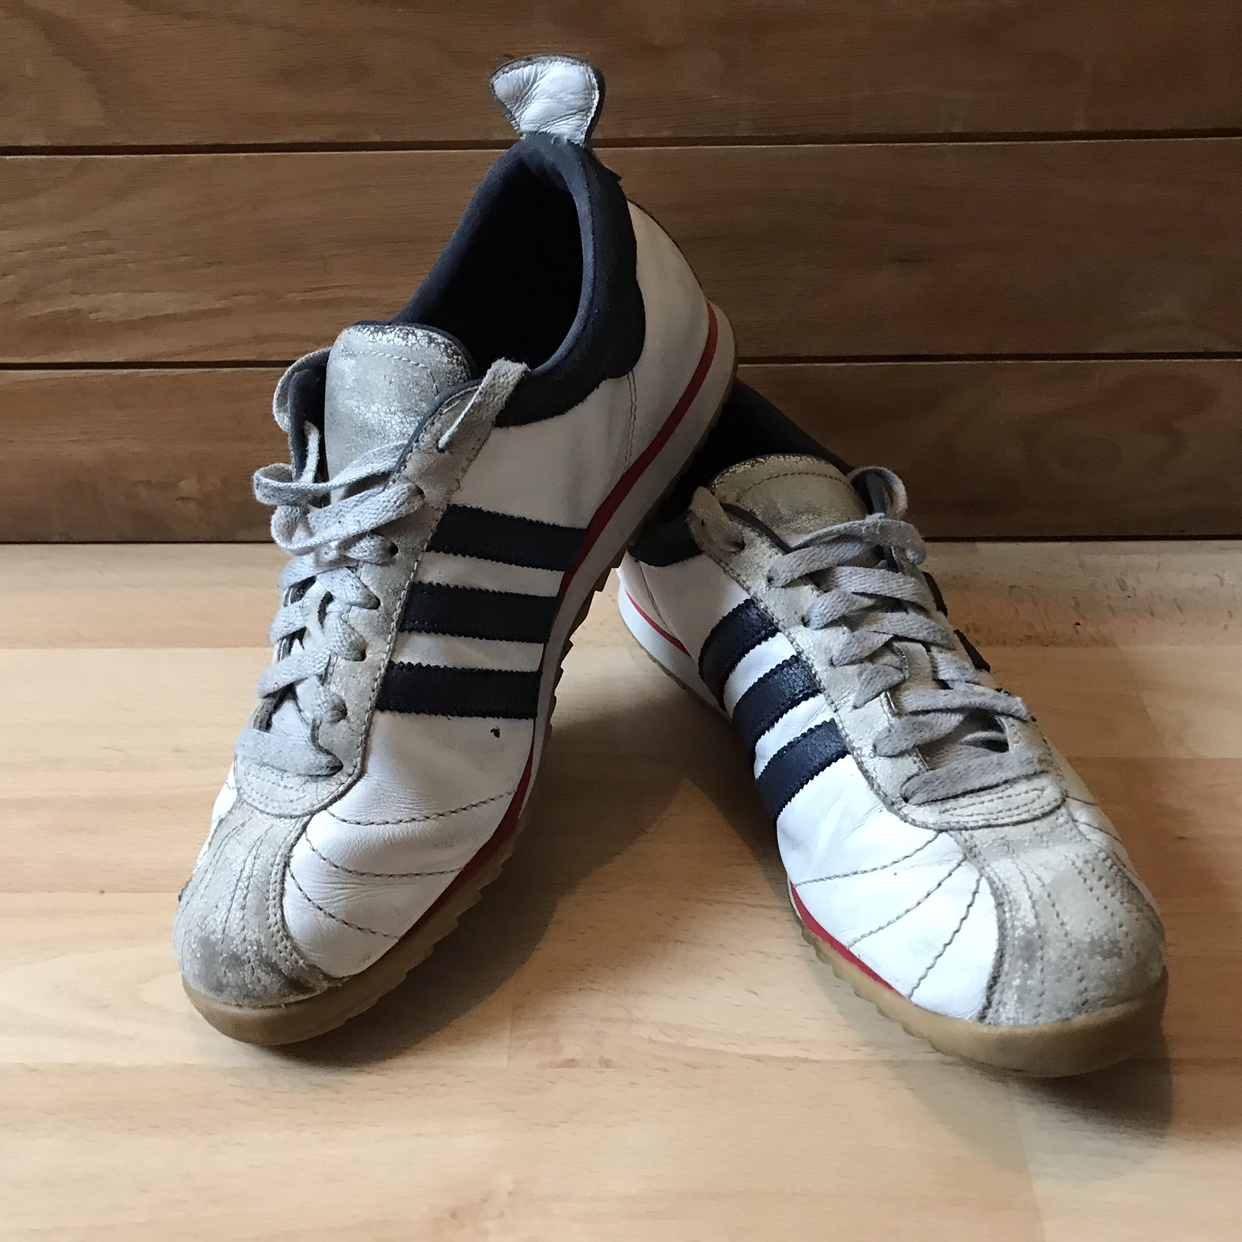 Trainers Men's Depop 68 Cup World Uk White Adidas Leather 7bfgY6y